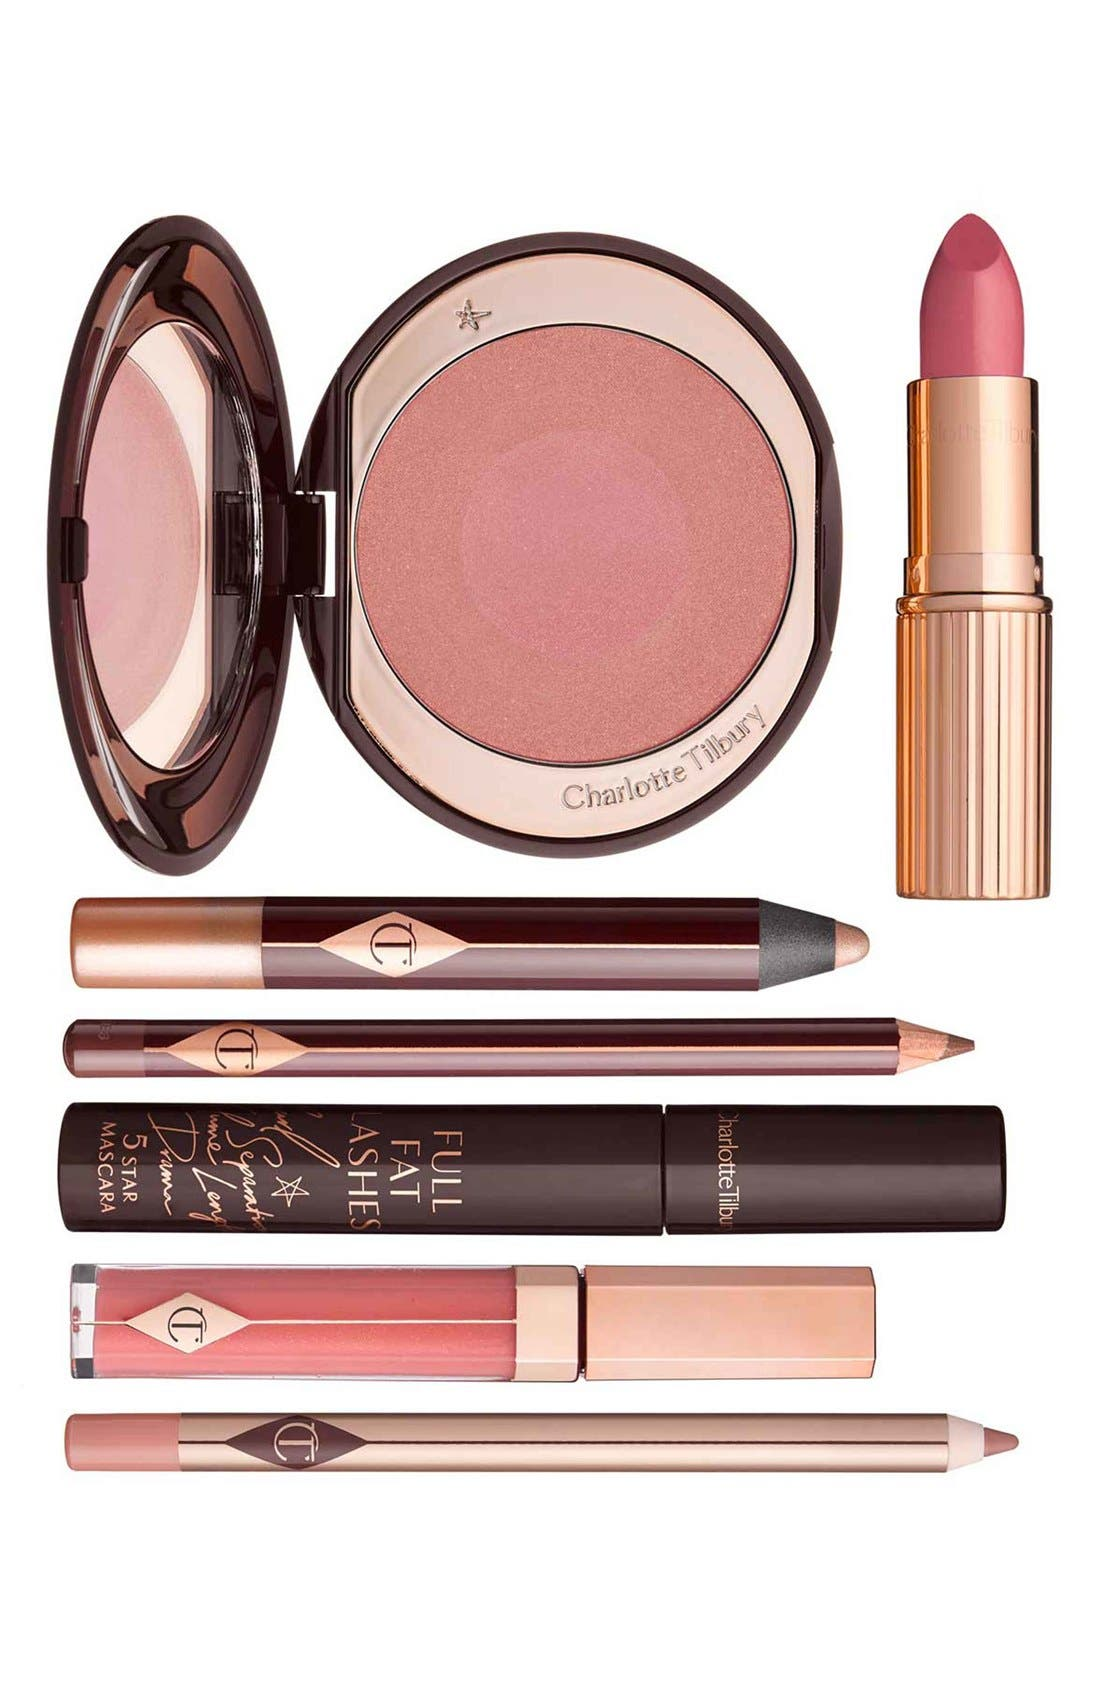 Charlotte Tilbury 'The Ingénue' Set ($213 Value)